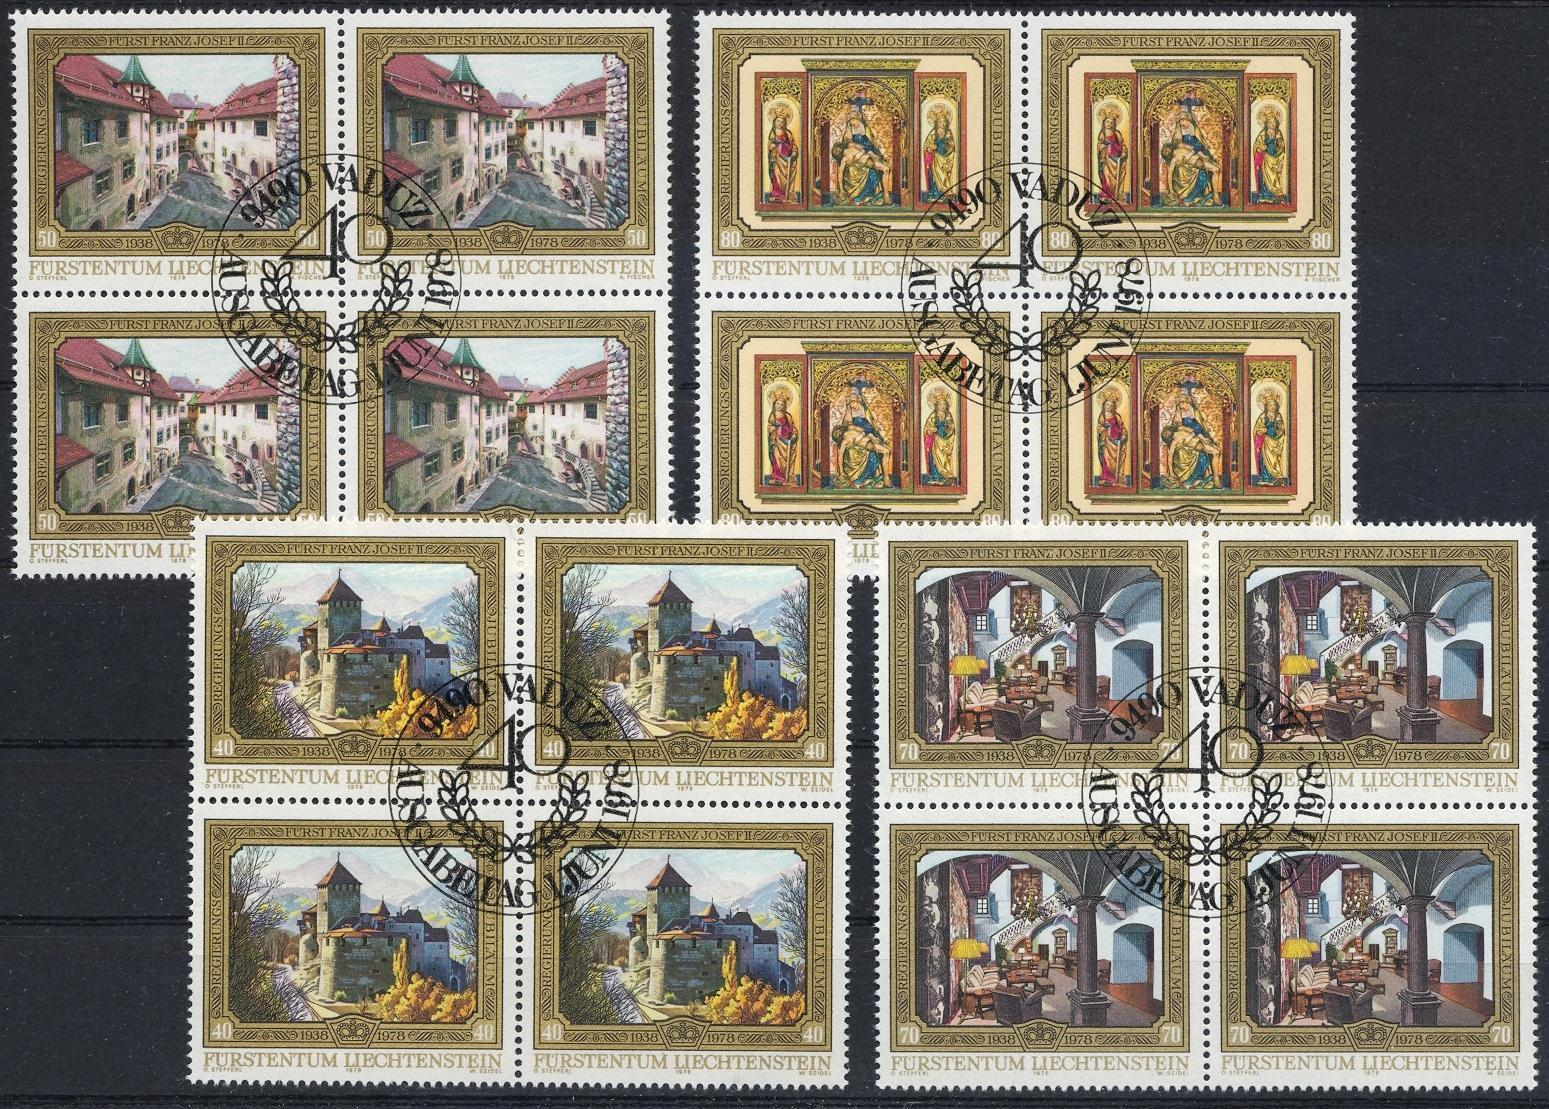 Stamps with Architecture, Castles from Liechtenstein (image for product #032221)